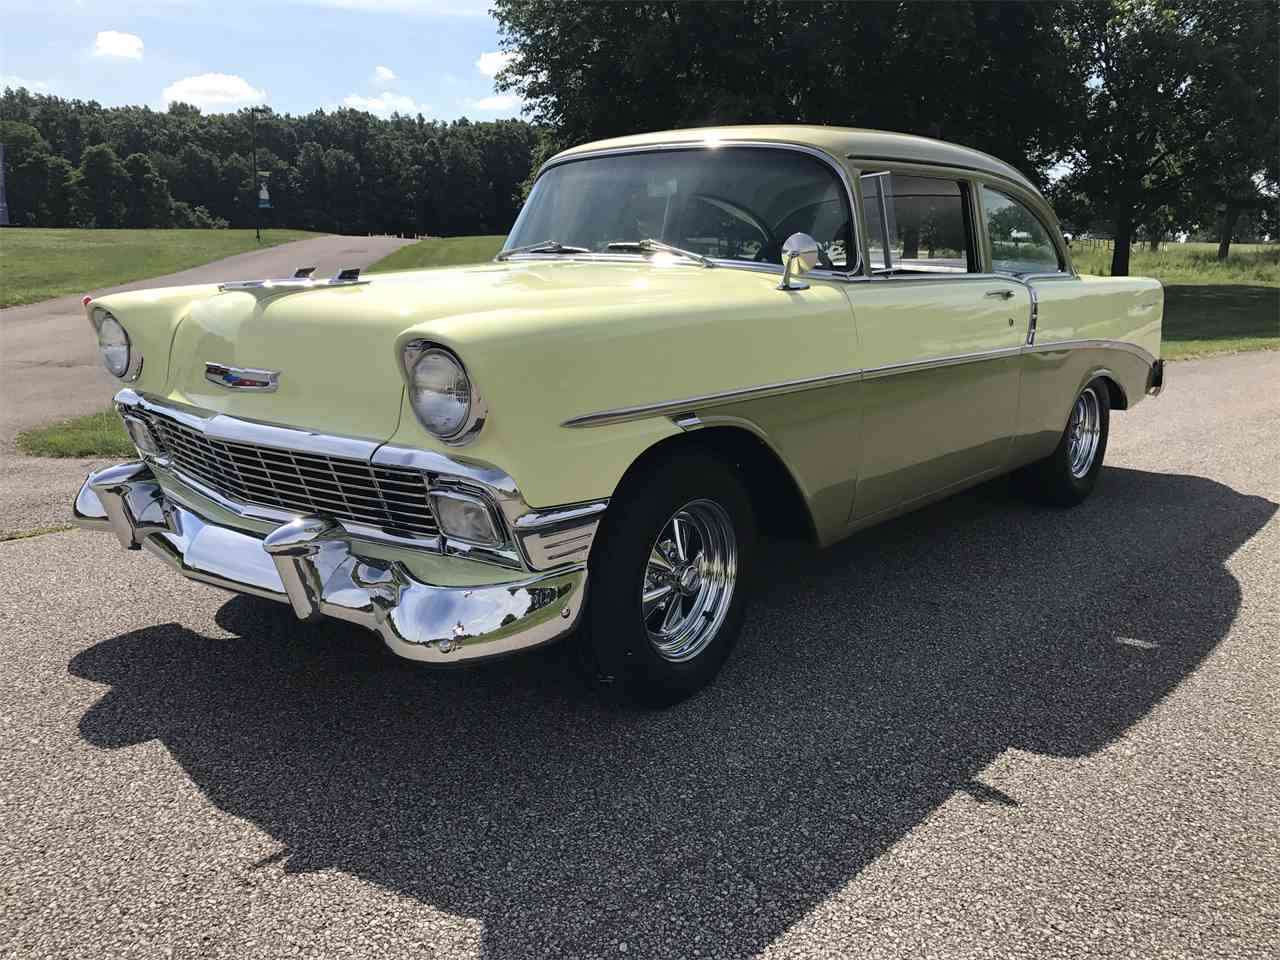 1956 chevrolet bel air for sale on classiccars com 74 - 1956 Chevrolet Del Ray For Sale Cc 1009867